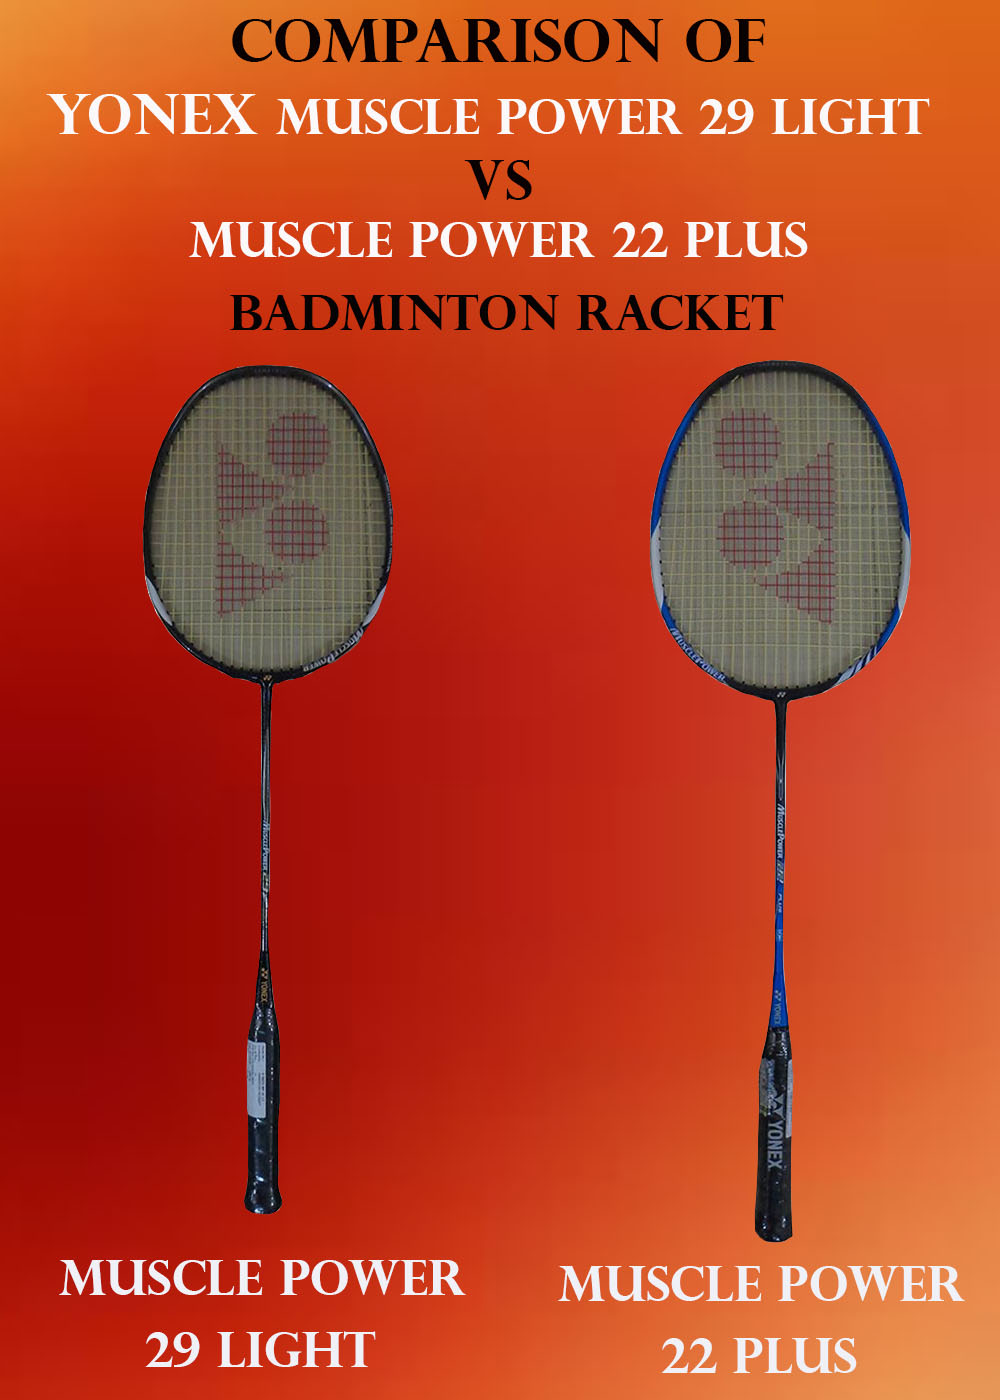 COMPARISON OF MP 29 LIGHT VS MP 22 PLUS RACKET IMAGE_1